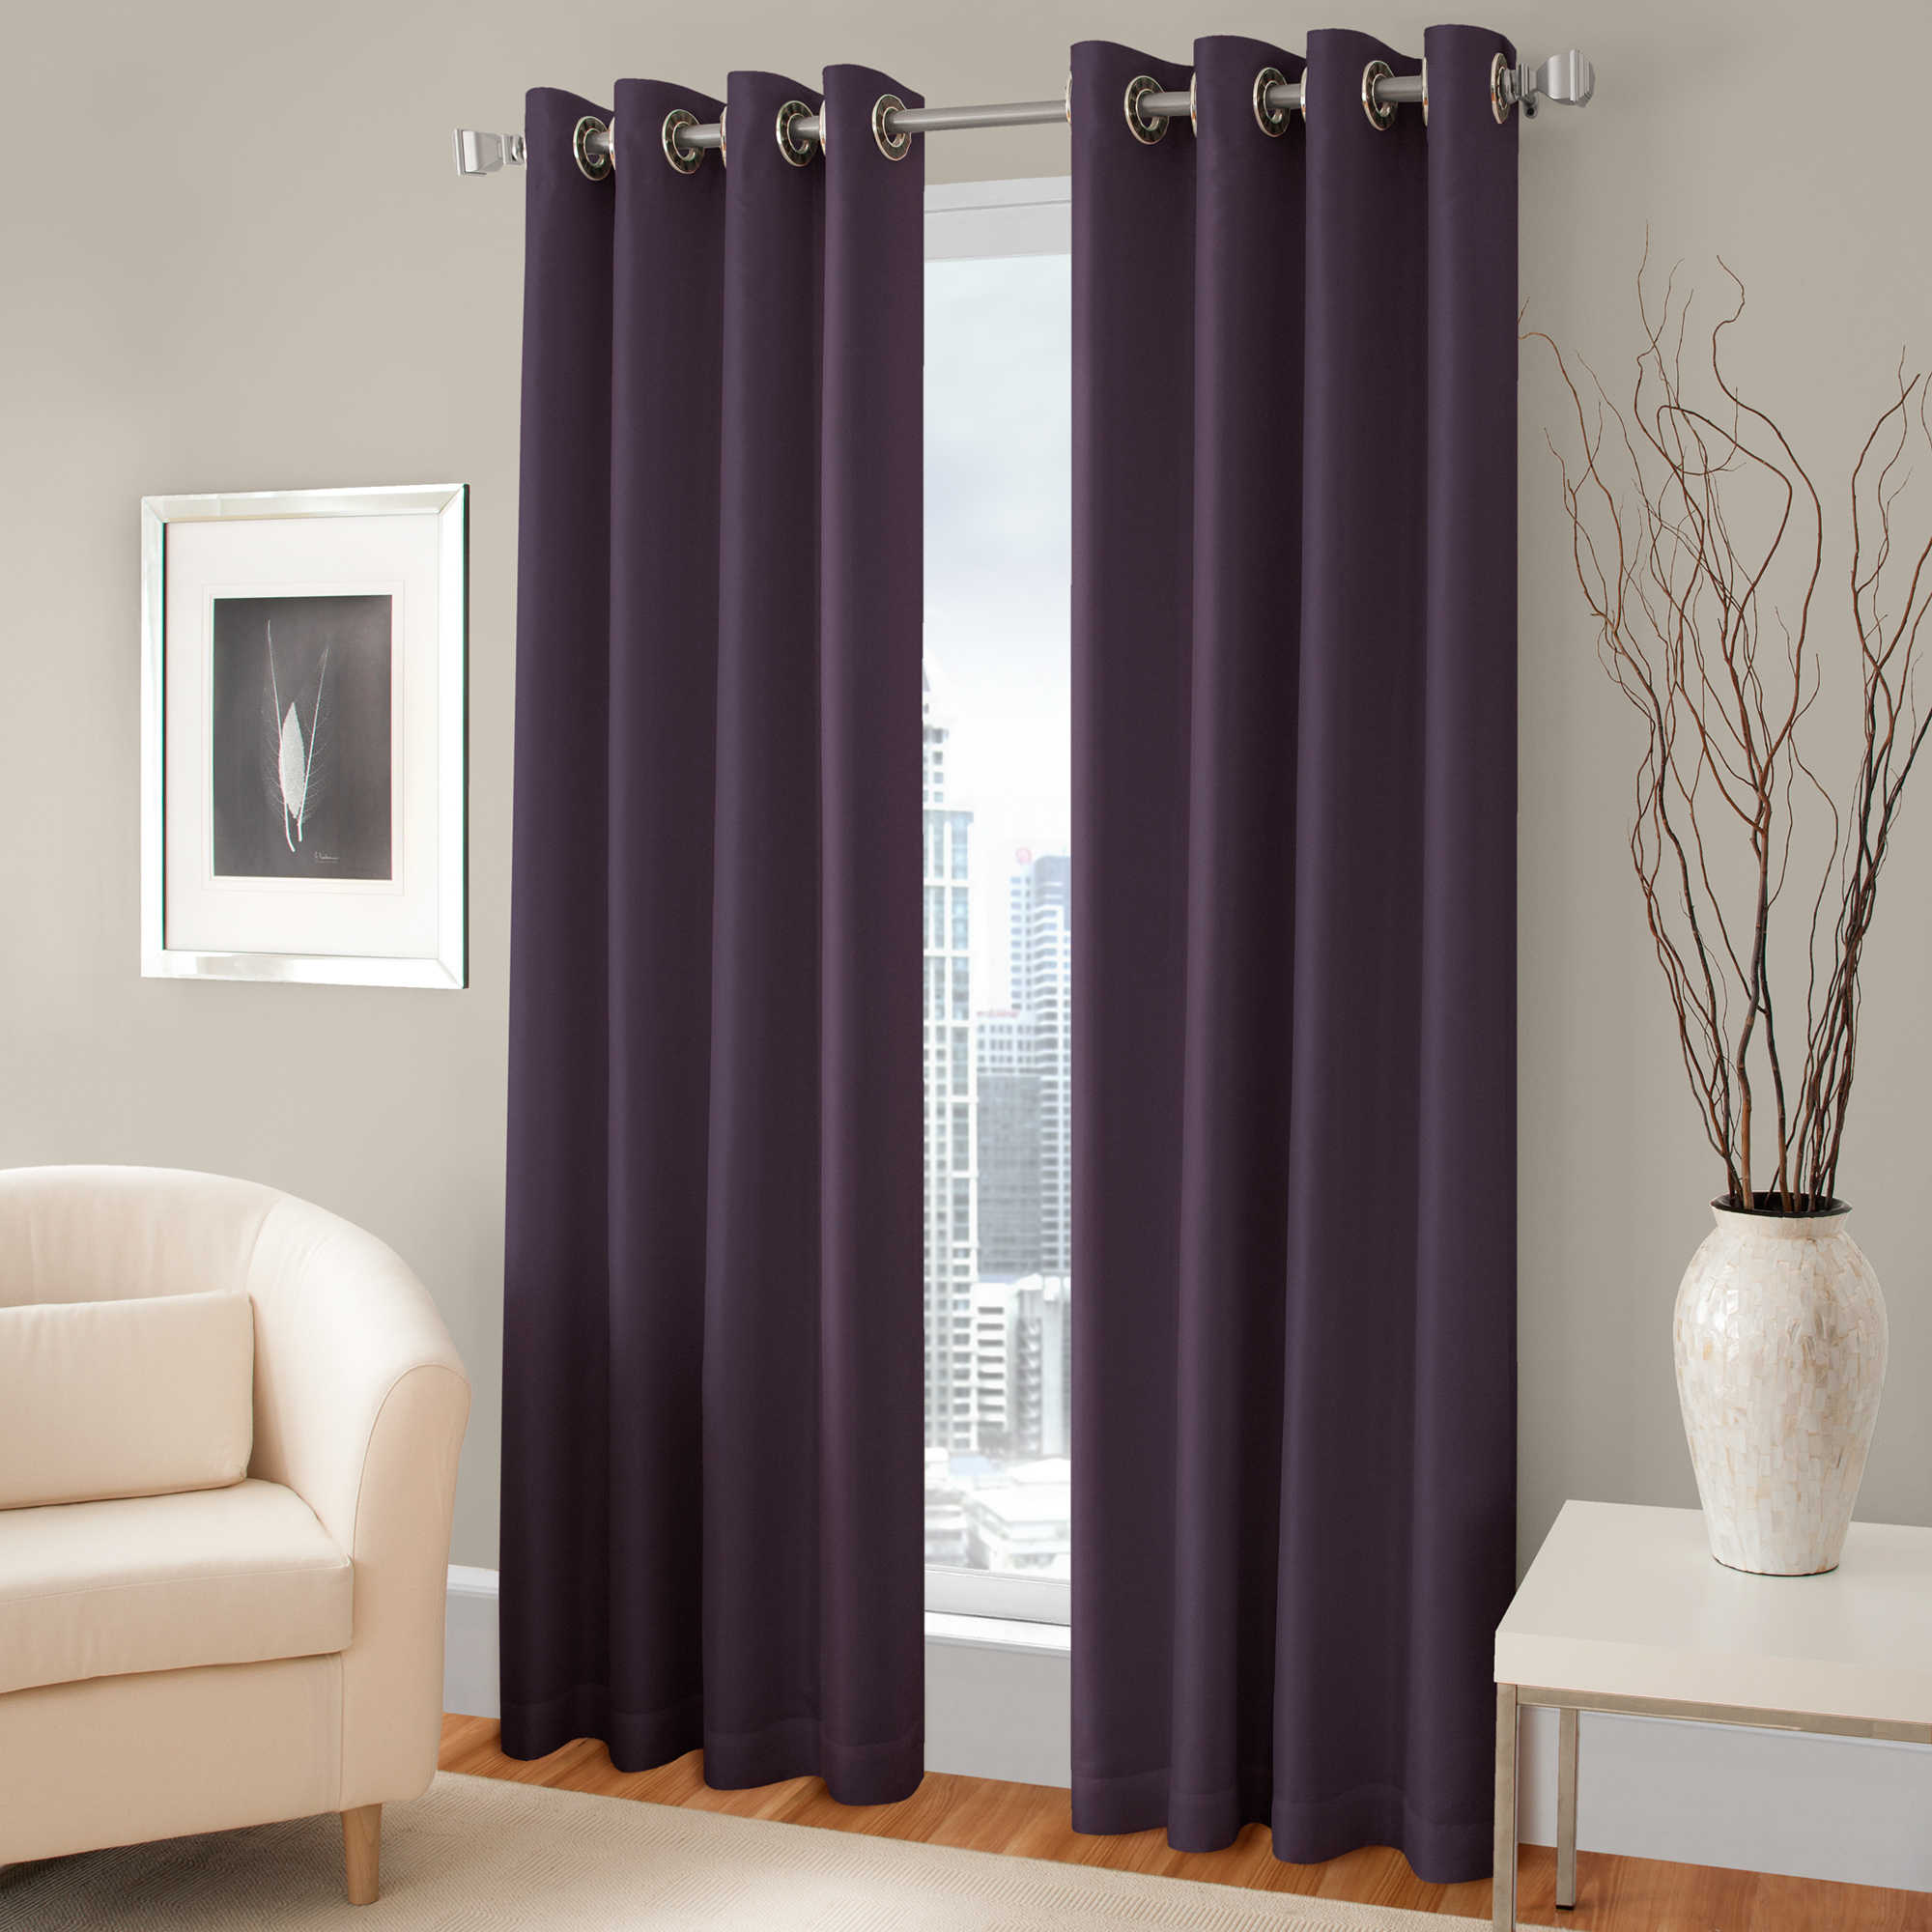 window bedroom and harmonious curtain pleasing curtains models